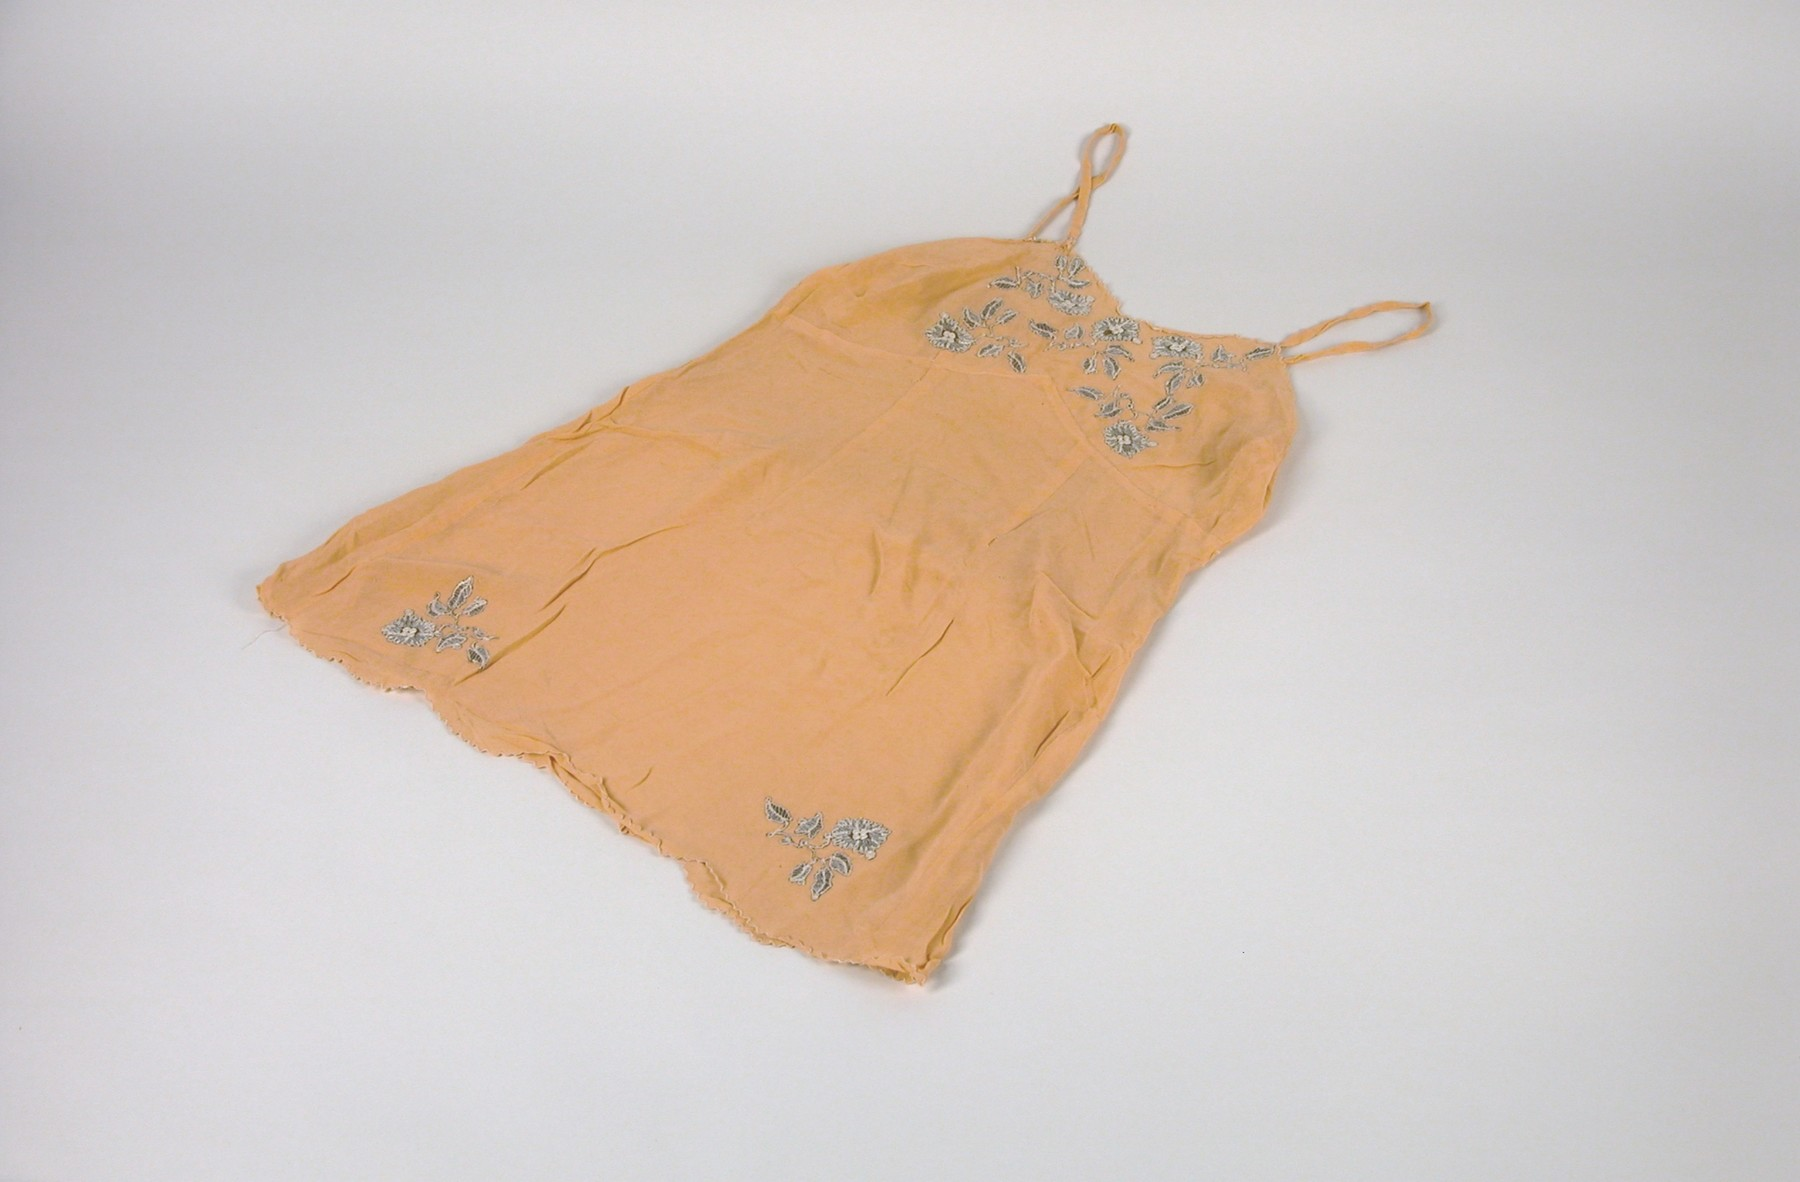 An embrodiered silk chemise belonging to Anna Ilona Gondos, that was taken with her when she left Budapest on the Kasztner rescue train.    The chemise was part of her trousseau when she married Bela Gondos in 1934.  Anna packed it along with several others on the Kasztner train to Bergen-Belsen.  It later accompanied her to Switzerland and, ultimately, to the U.S.